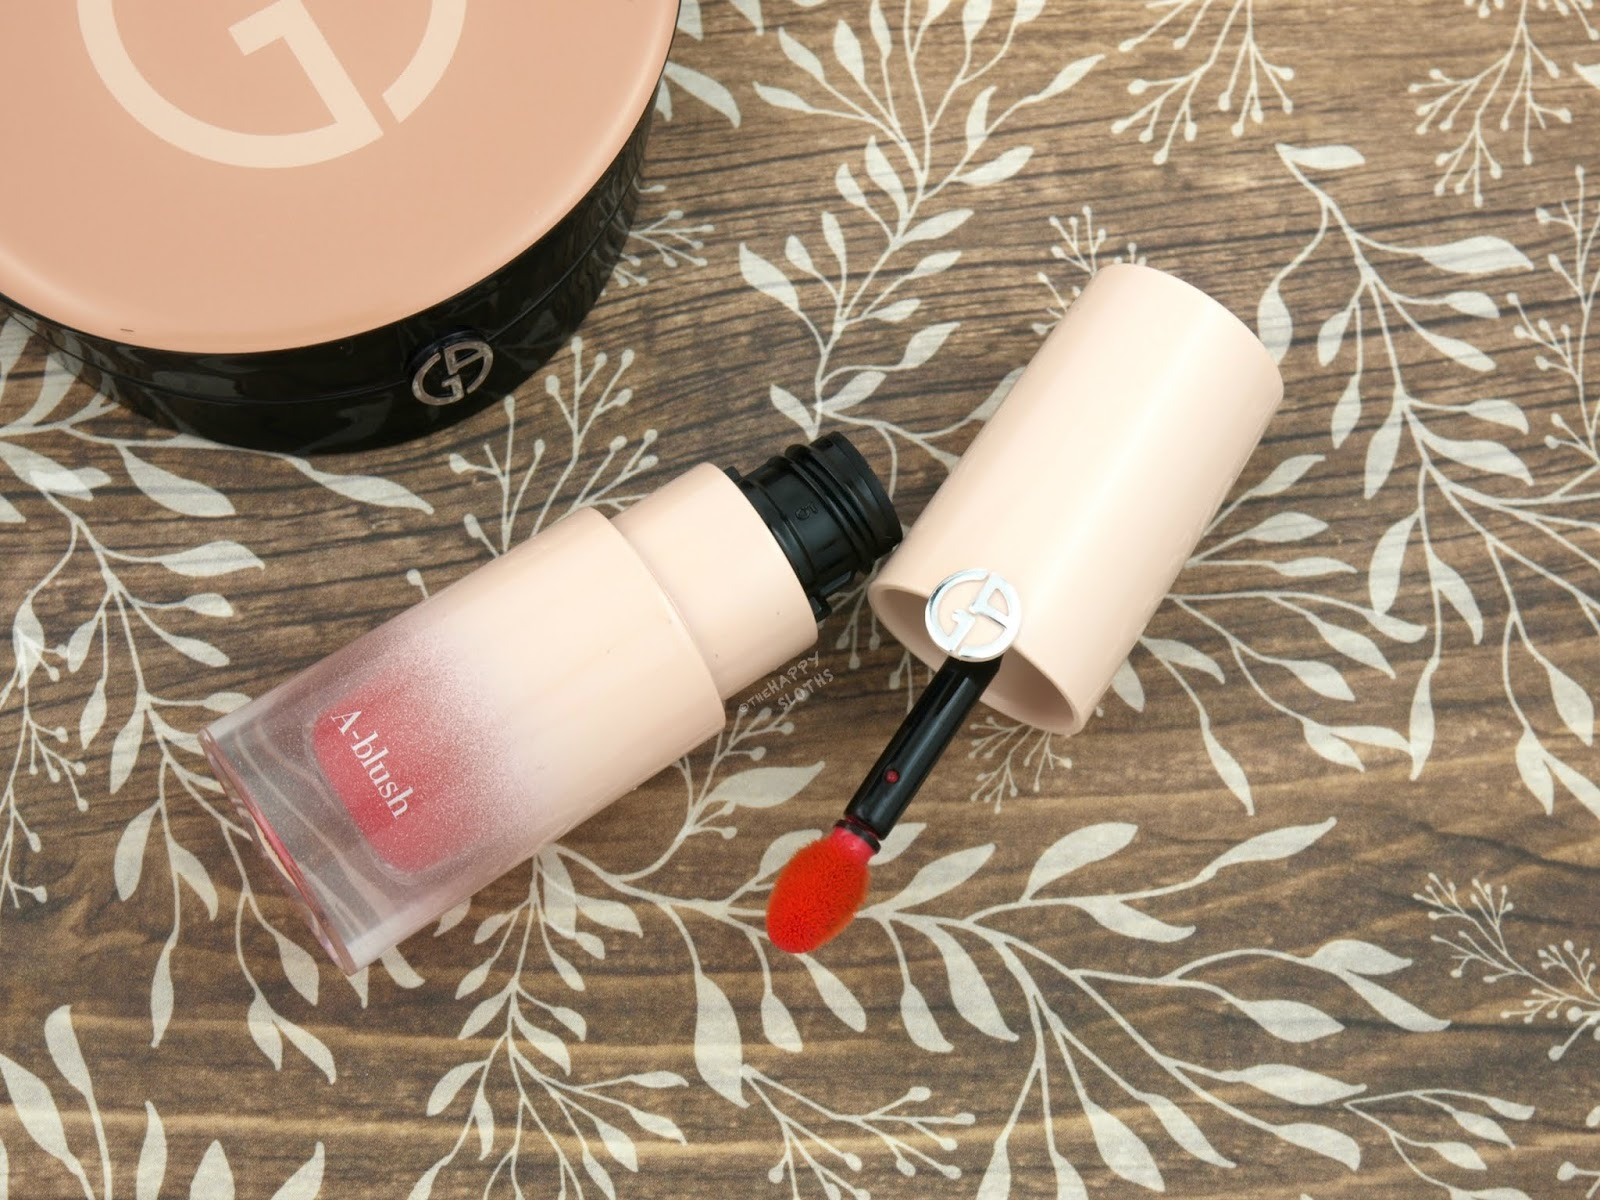 Giorgio Armani Beauty | A-Line Liquid Blush: Review and Swatches